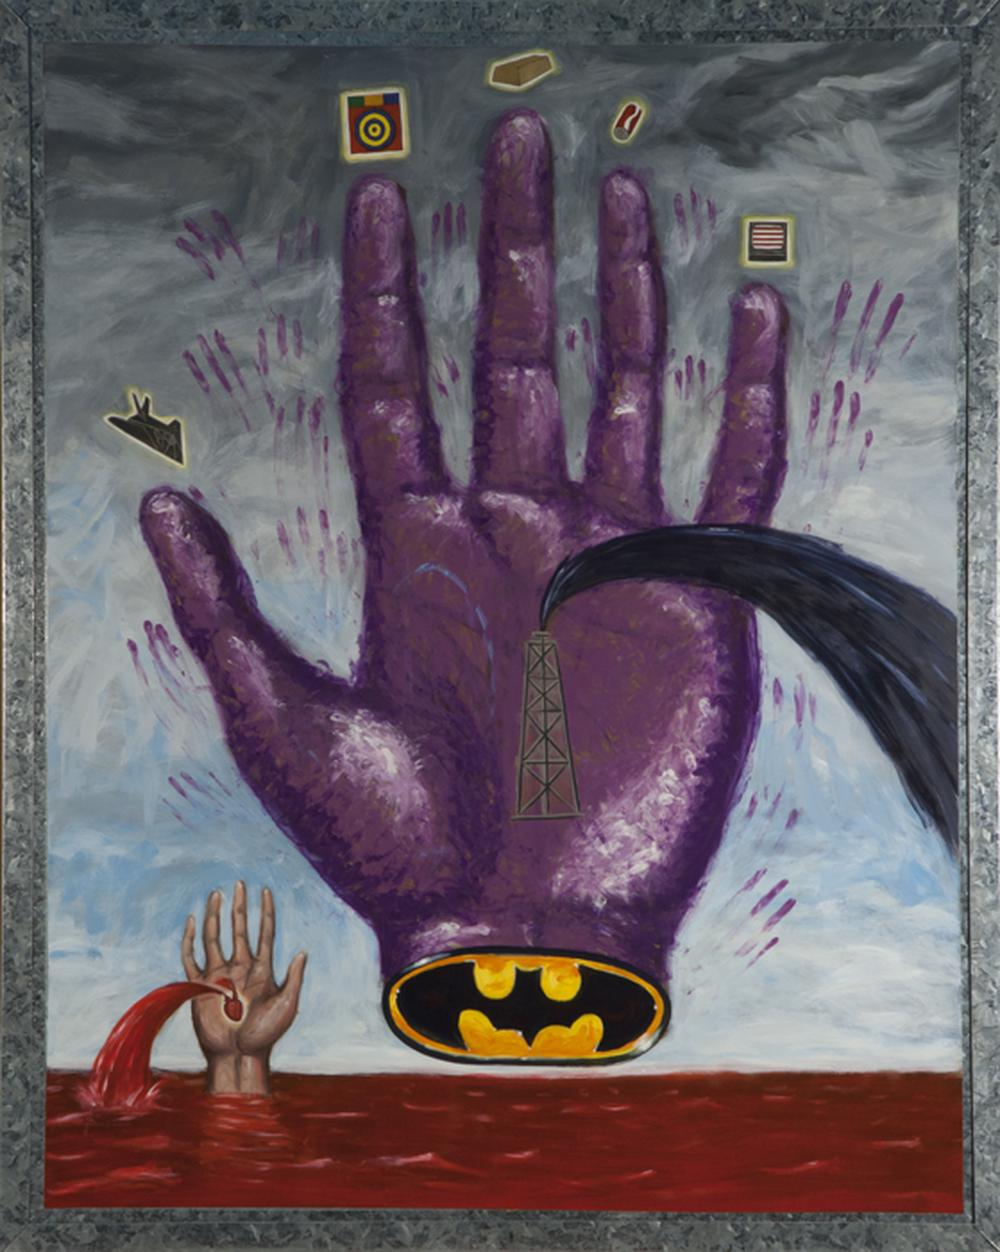 a painting of a purple floating hand with the batman symbol on the base of the palm while the palm spews unrefined oil over a bleedding human hand bleeding from a heart in its palm causing a sea of red against the gray sky in the horizon